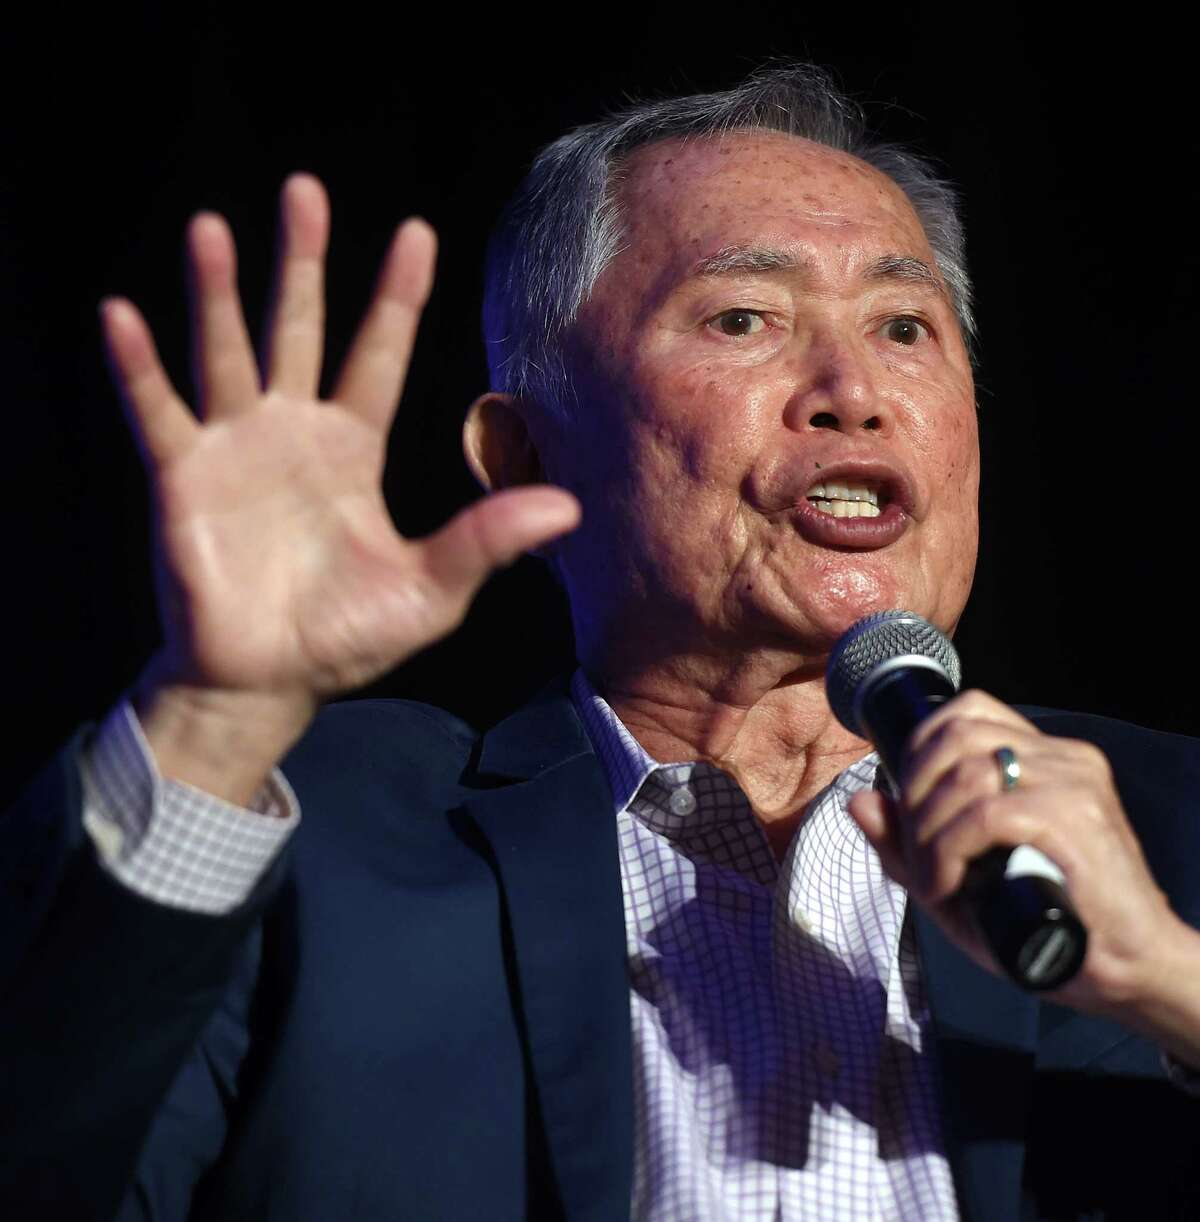 Actor and activist George Takei speaks with composer Byron Au Yong (not in photo) before receiving the Visionary Leadership Award by the International Festival of Arts & Ideas at the Omni New Haven Hotel at Yale on February 18, 2020. The award honors a person whose work impacts the world.